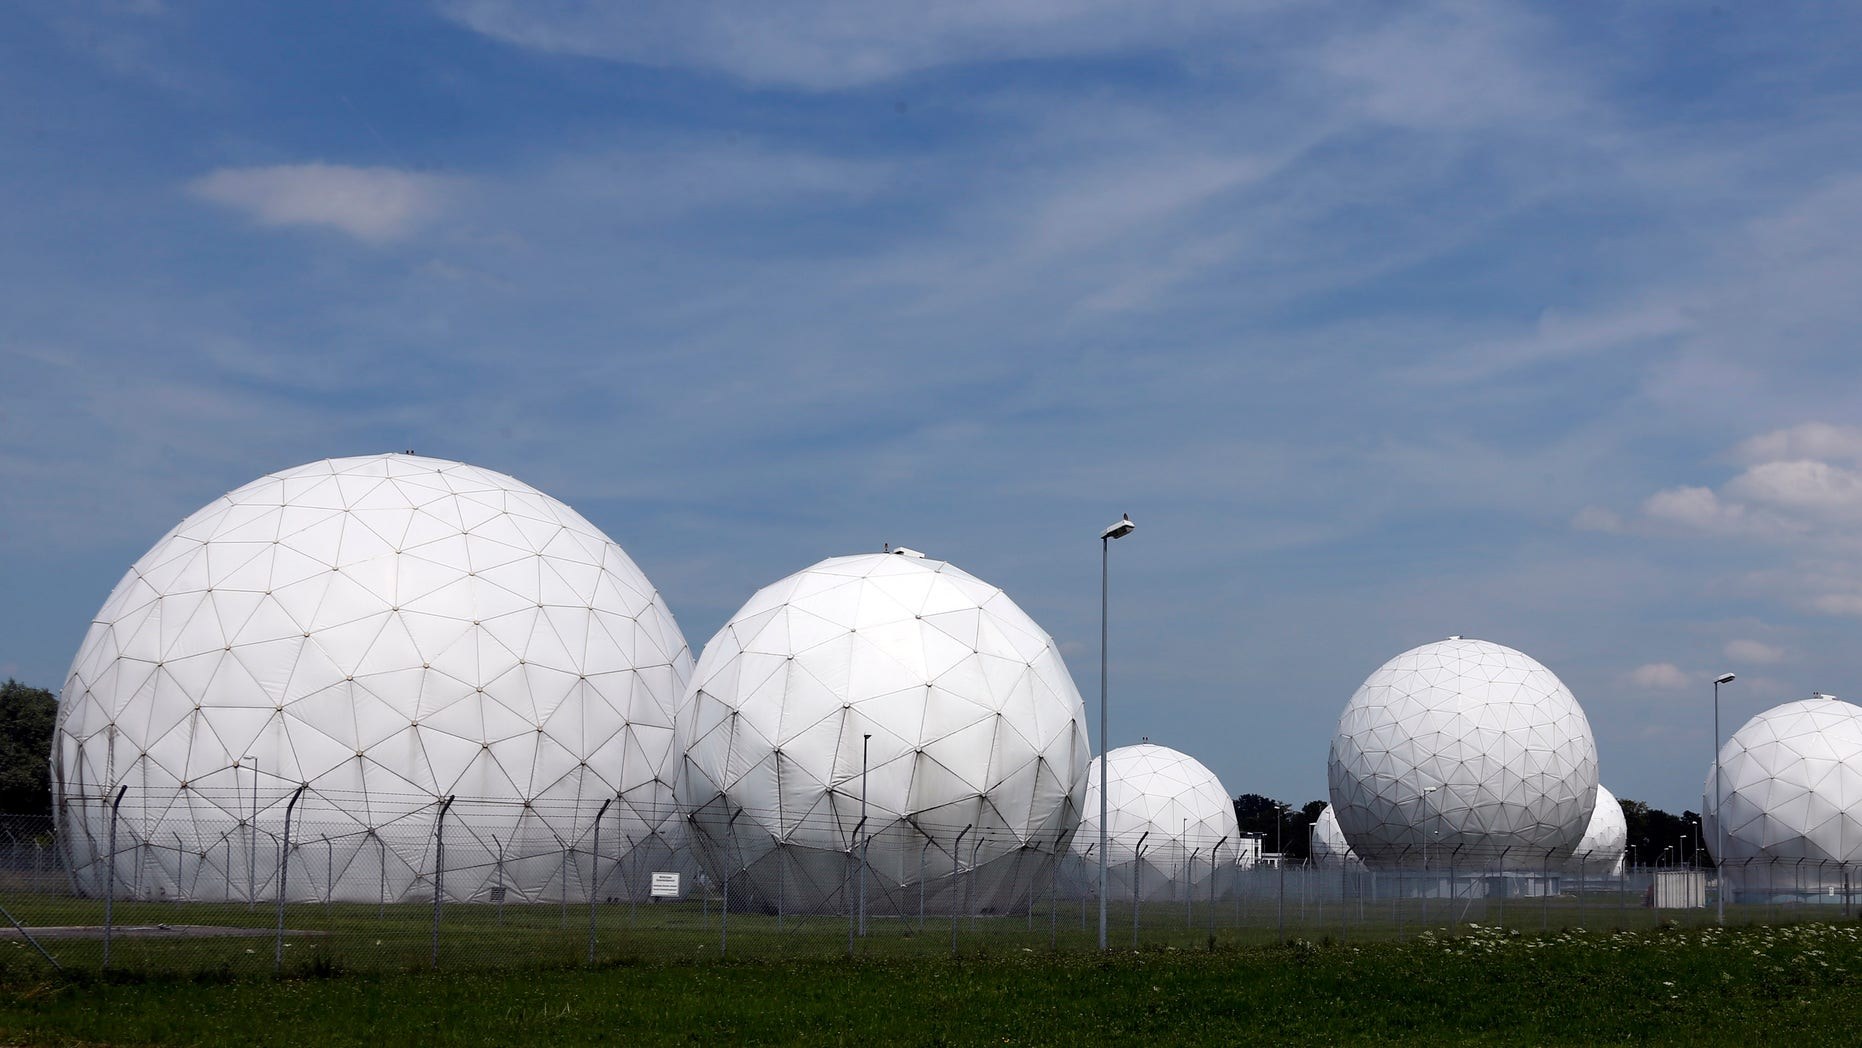 July 8, 2013 - FILE photo of the former monitoring base of the U.S. intelligence organization National Security Agency (NSA) in Bad Aibling, near Munich, southern Germany, that was closed in 2004.  The German government has canceled a Cold War-era surveillance pact with the US and Britain following concerns about their alleged electronic eavesdropping in Germany.